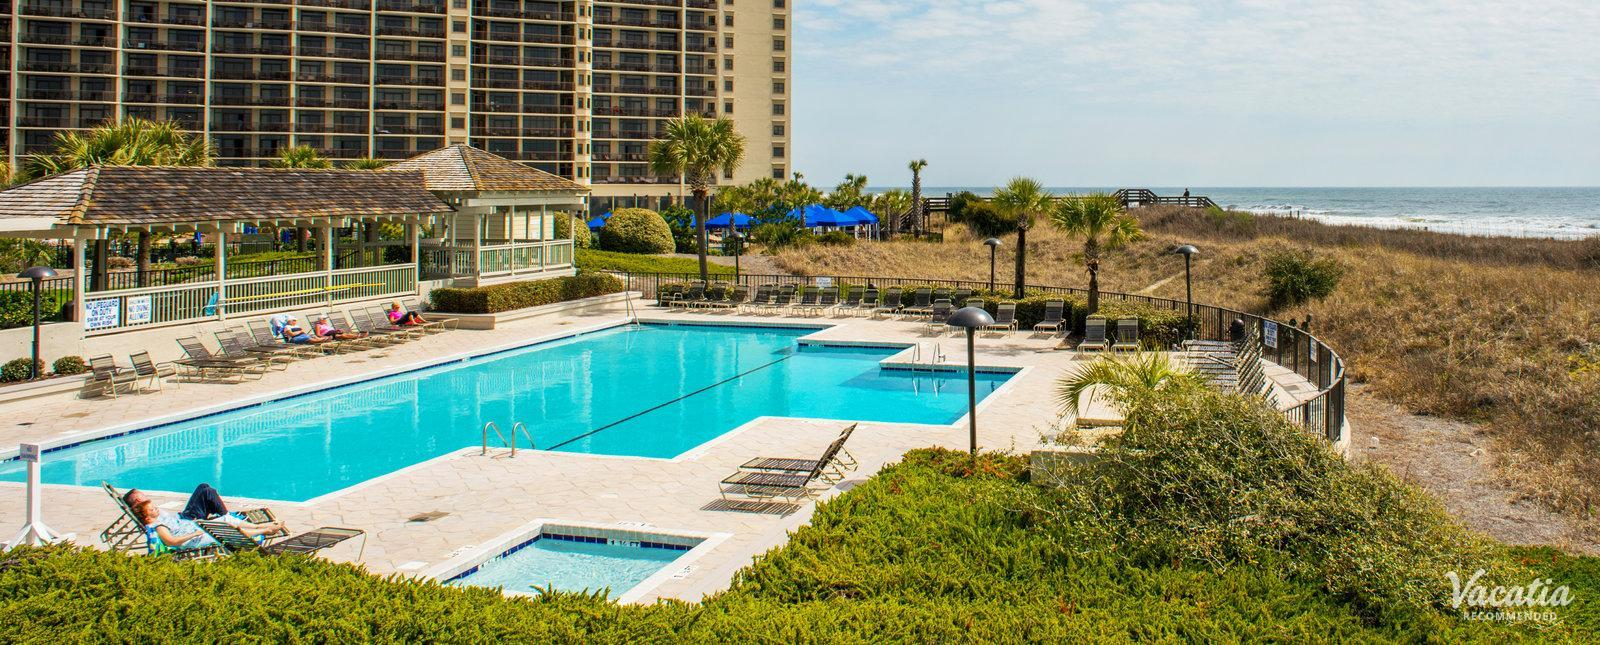 Ocean Creek Resort myrtlebeach family pool